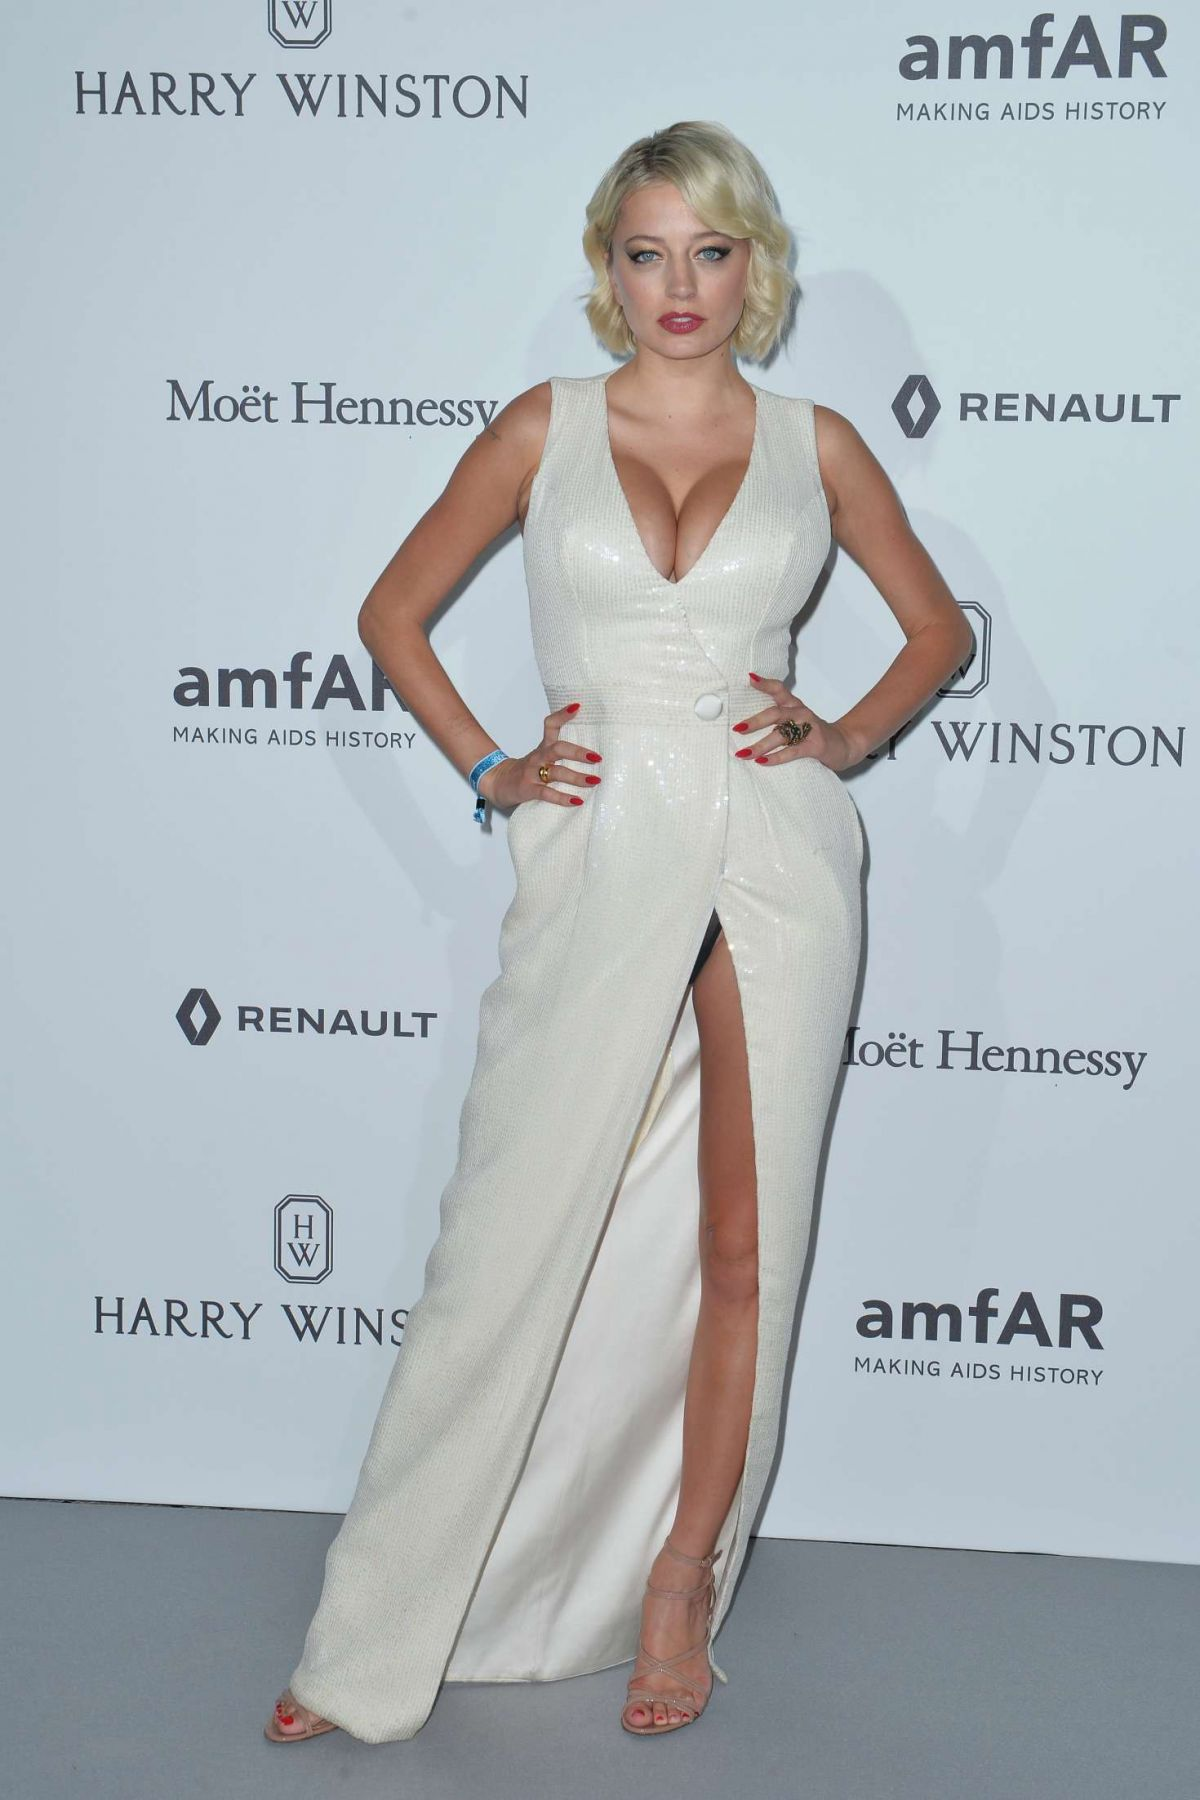 Caroline Vreeland At 2017 amfar gala haute couture fashion week in Paris   caroline-vreeland-at-2017-amfar-gala-haute-couture-fashion-week-in-paris_5